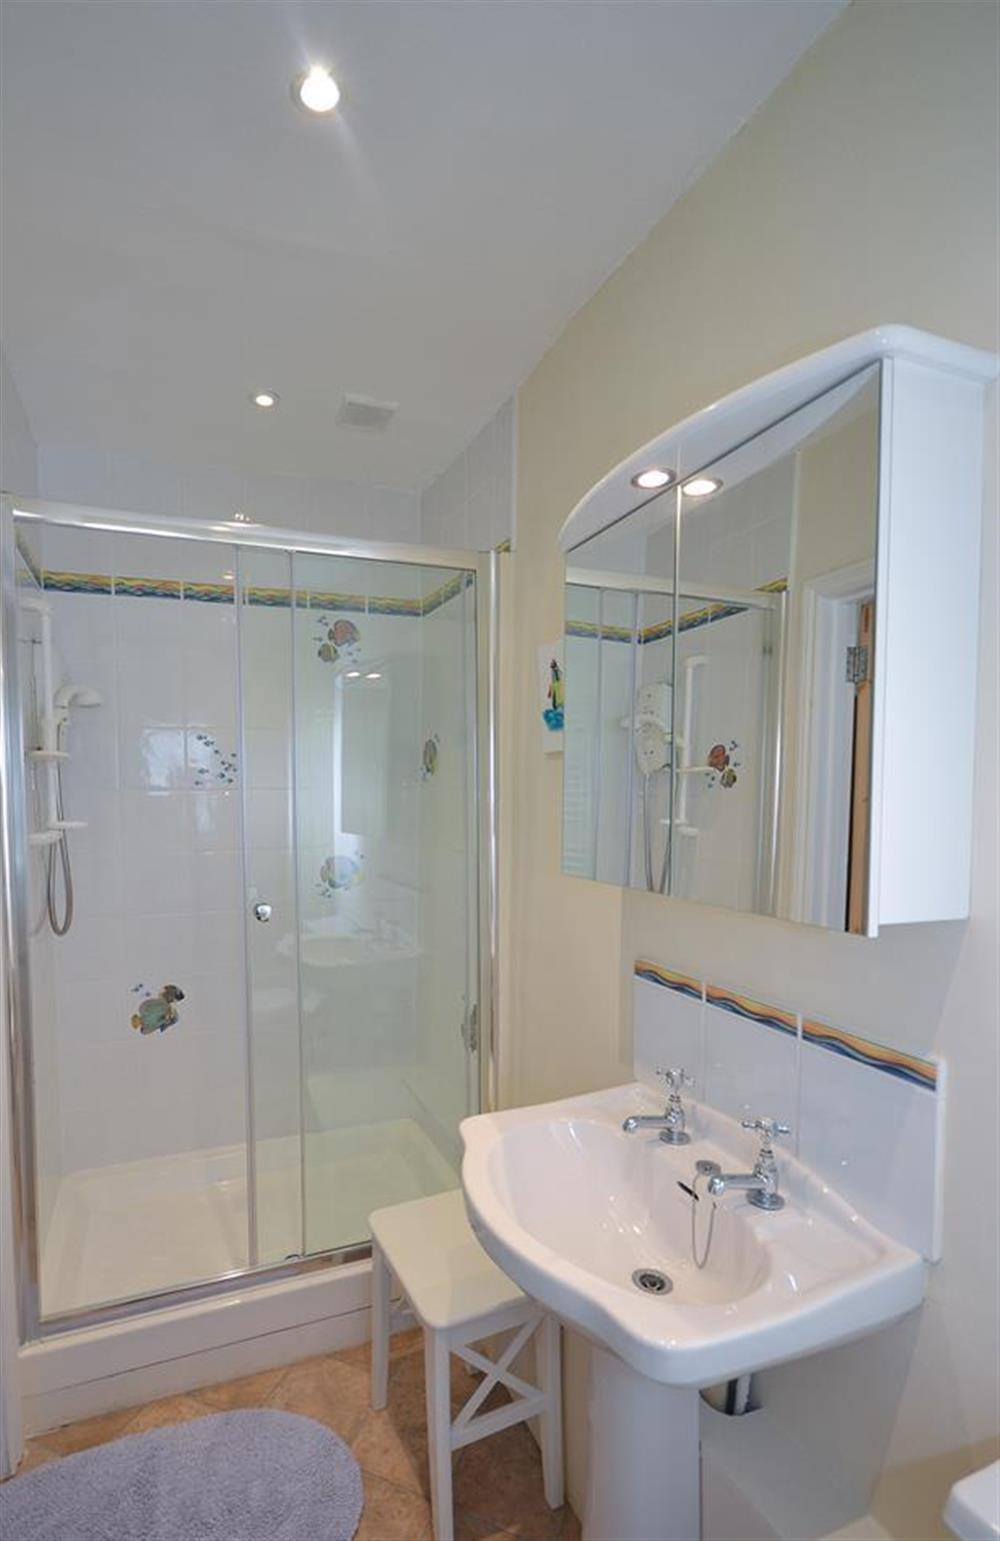 The ground floor shower room at Homelands, Dittisham